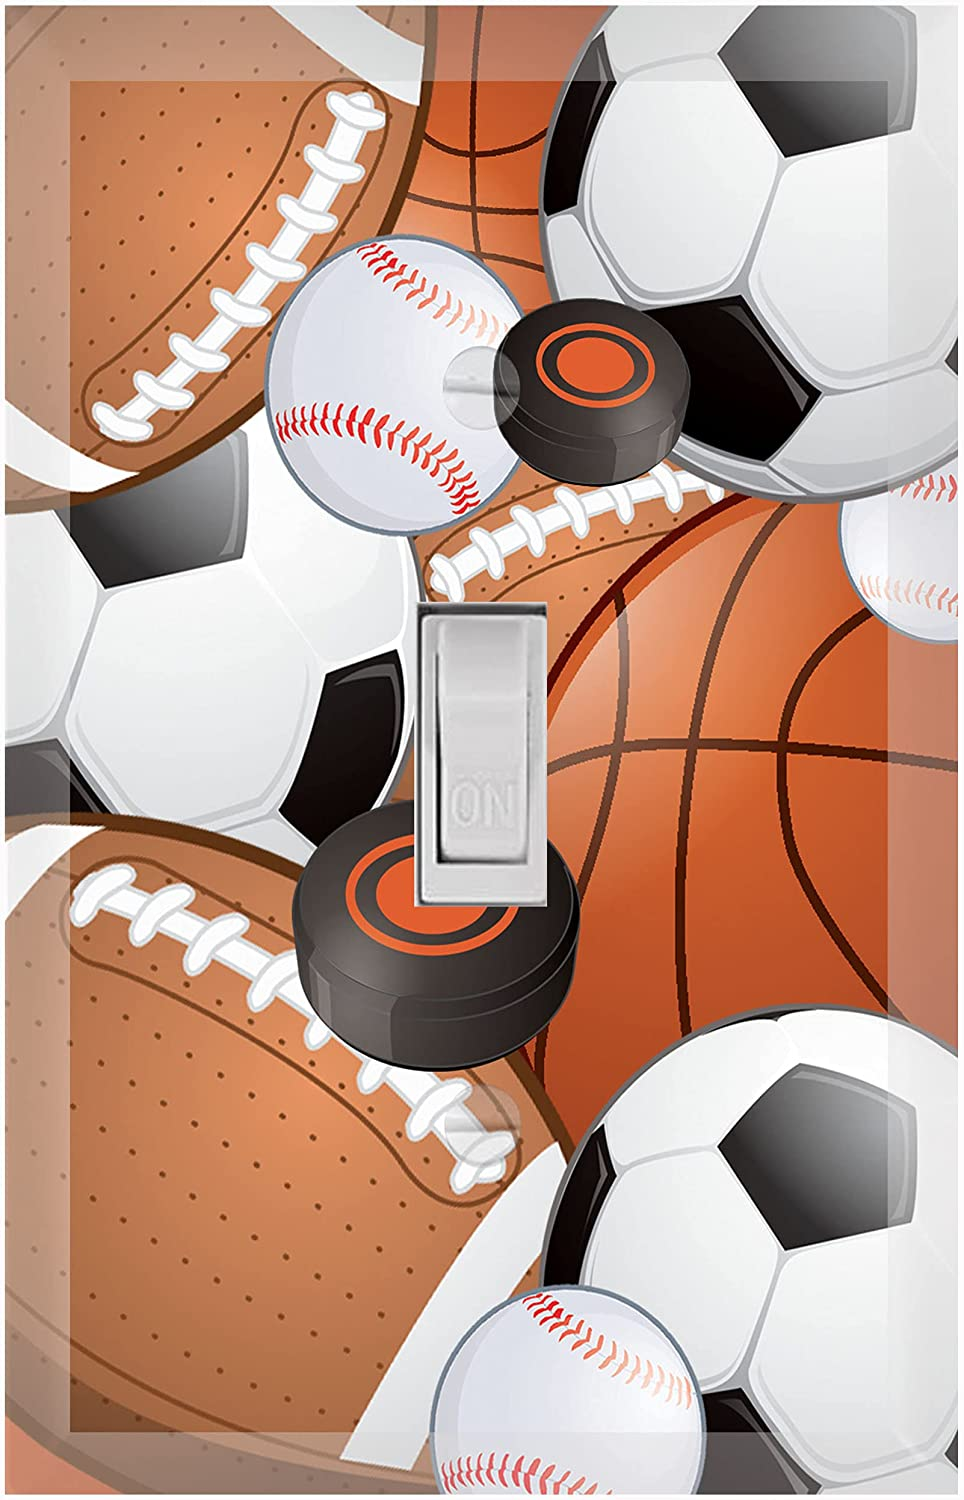 Create-A-Mural Kids Sports Decor Light Switch Cover Plate Decorative Nursery Teen Toddler Room Bedroom Bathroom Playroom DIY Wall Decoration (Sports)